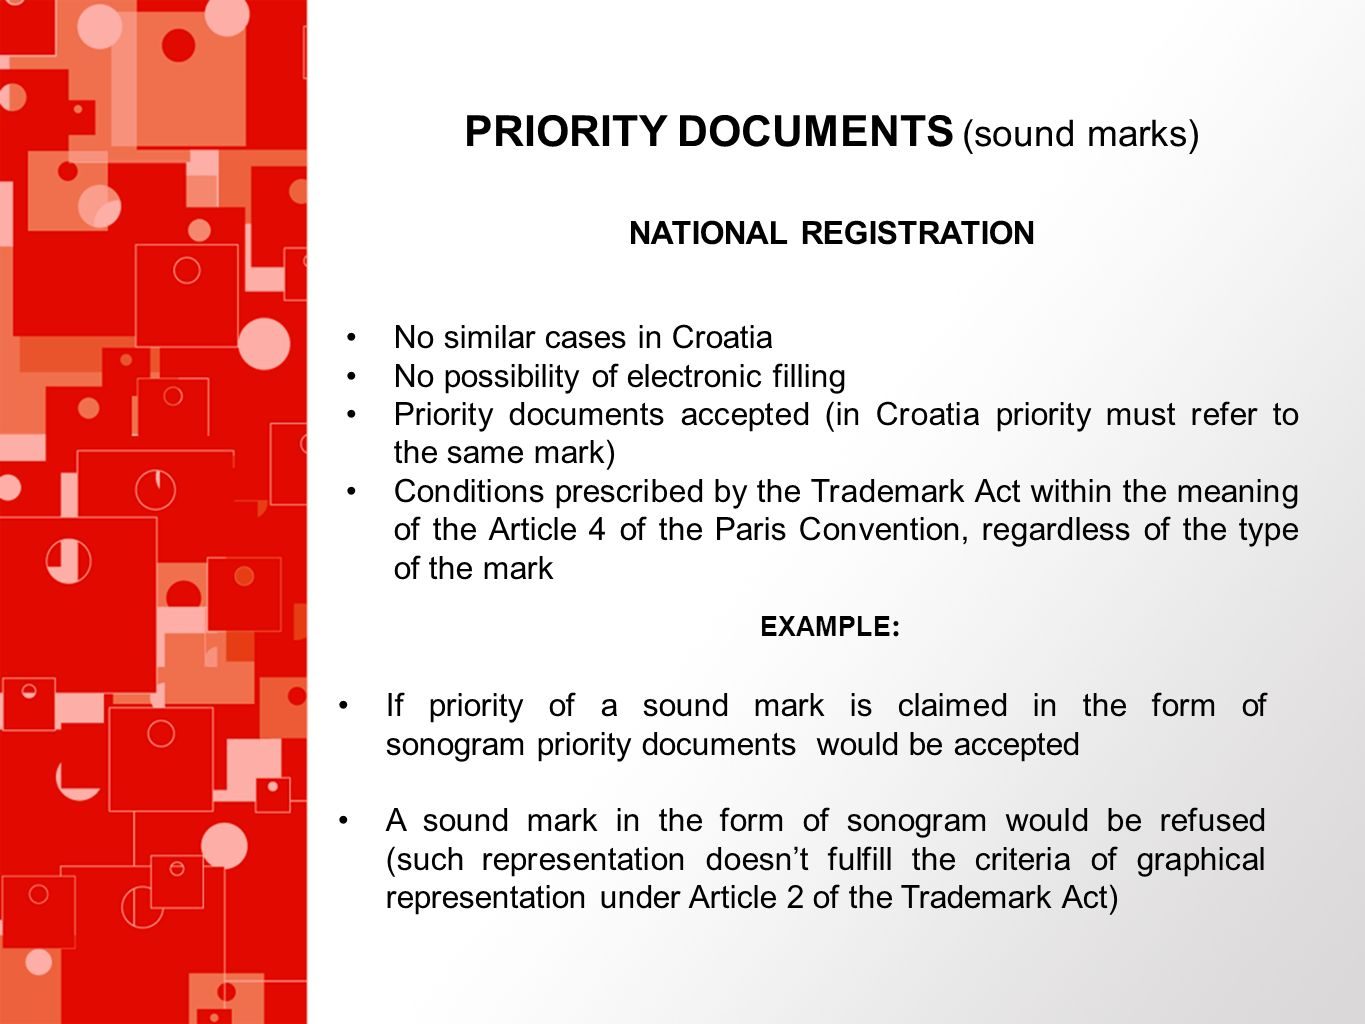 PRIORITY DOCUMENTS (sound marks) NATIONAL REGISTRATION No similar cases in Croatia No possibility of electronic filling Priority documents accepted (i